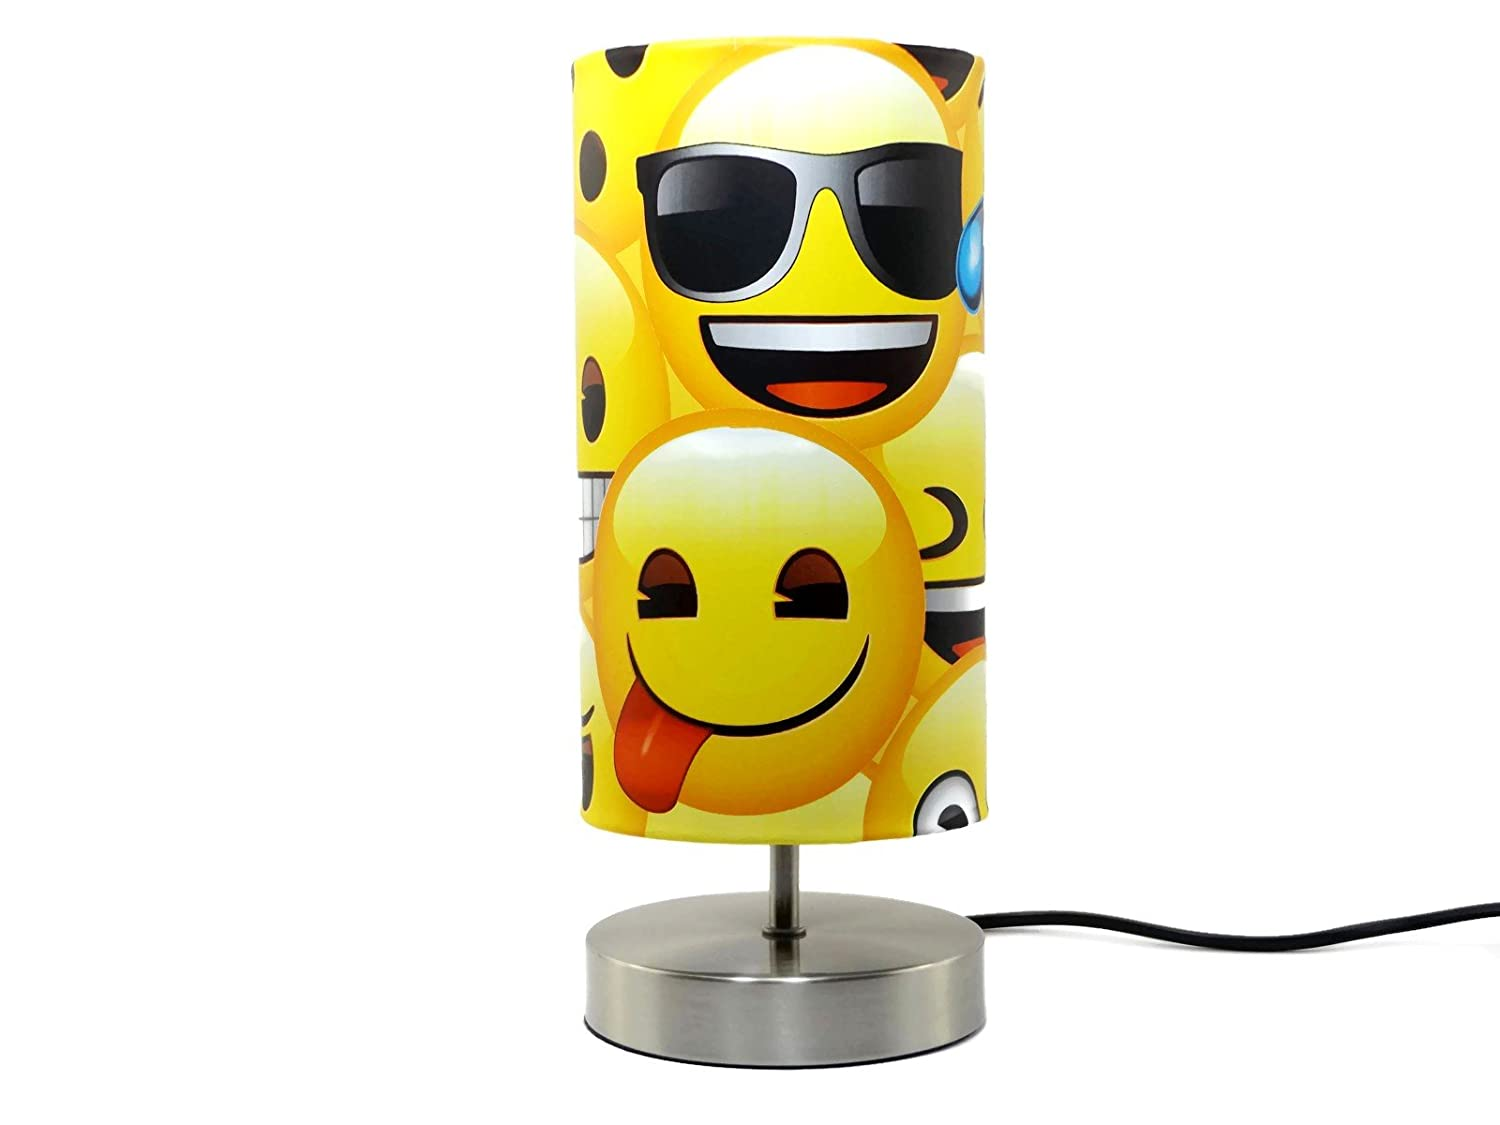 Emoji Lamp Light Lampshade Bedside Table Desk Lamp Bedroom Lamps ...